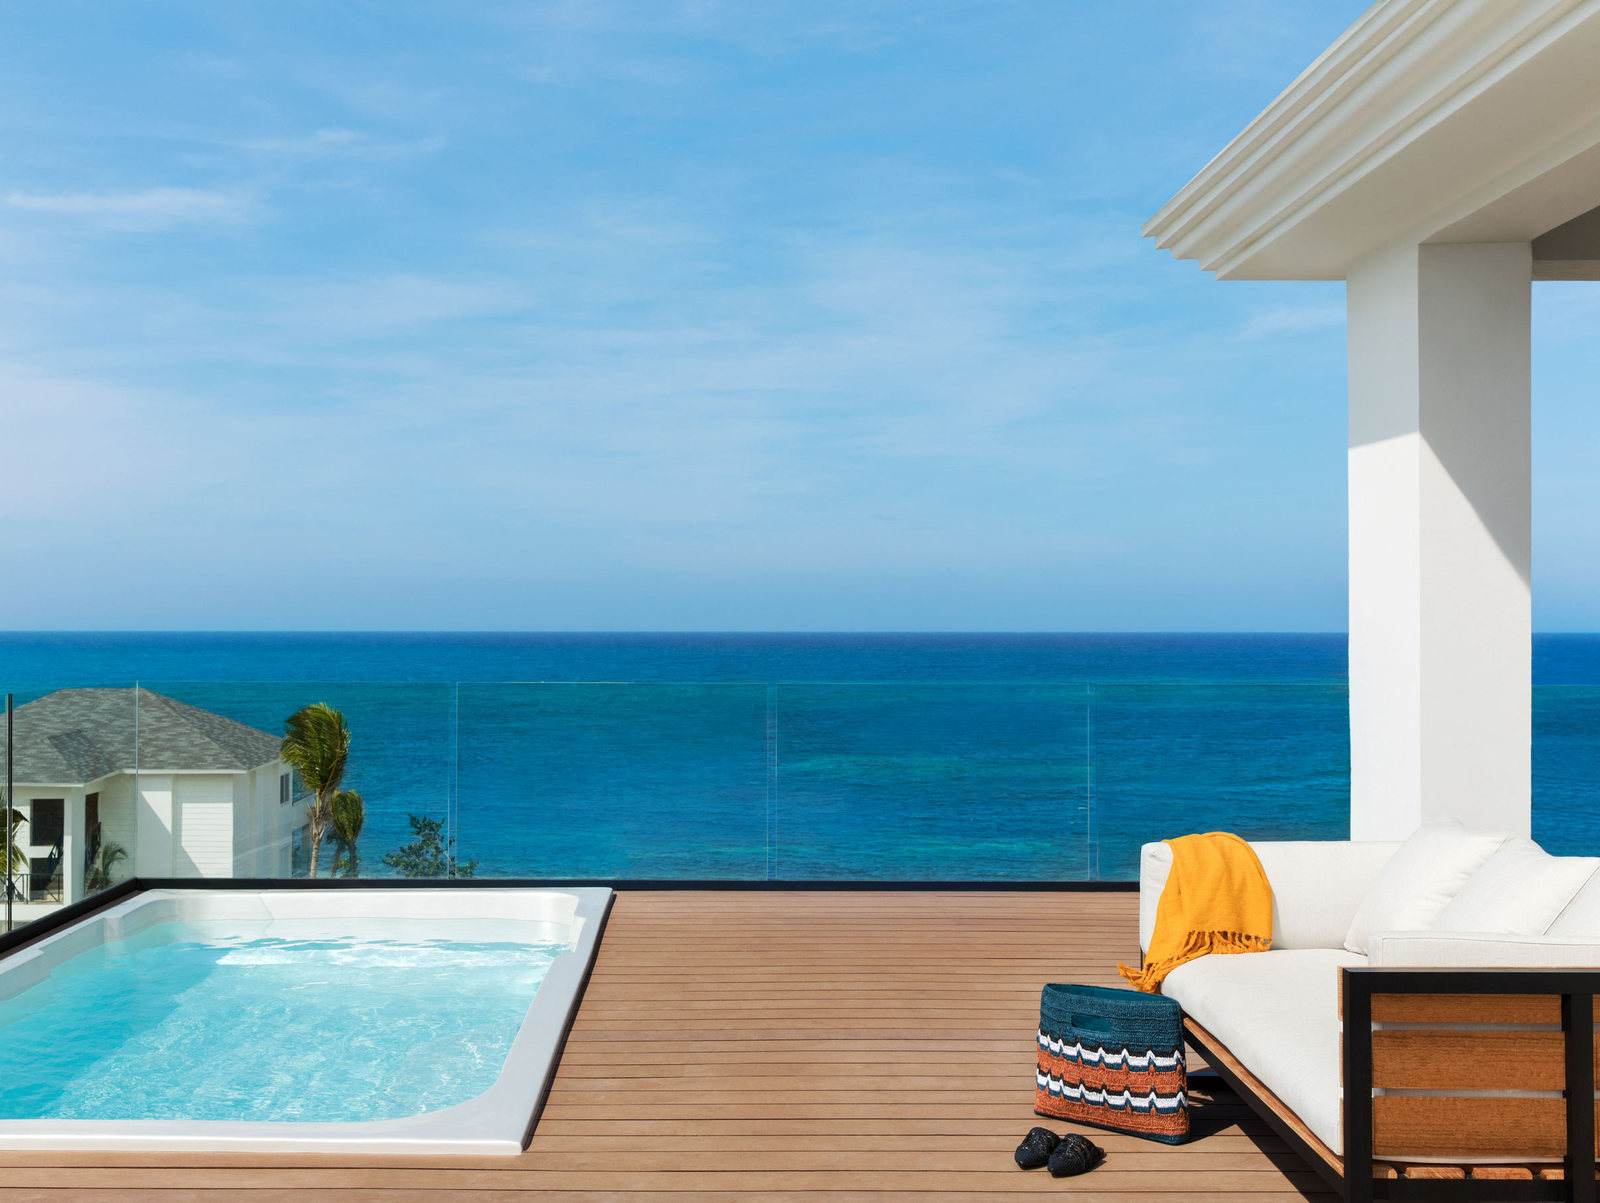 XOB_Imperial_Suite_Rooftop_Terrace_With_Plunge_Pool_Ocean_Front_2_HR